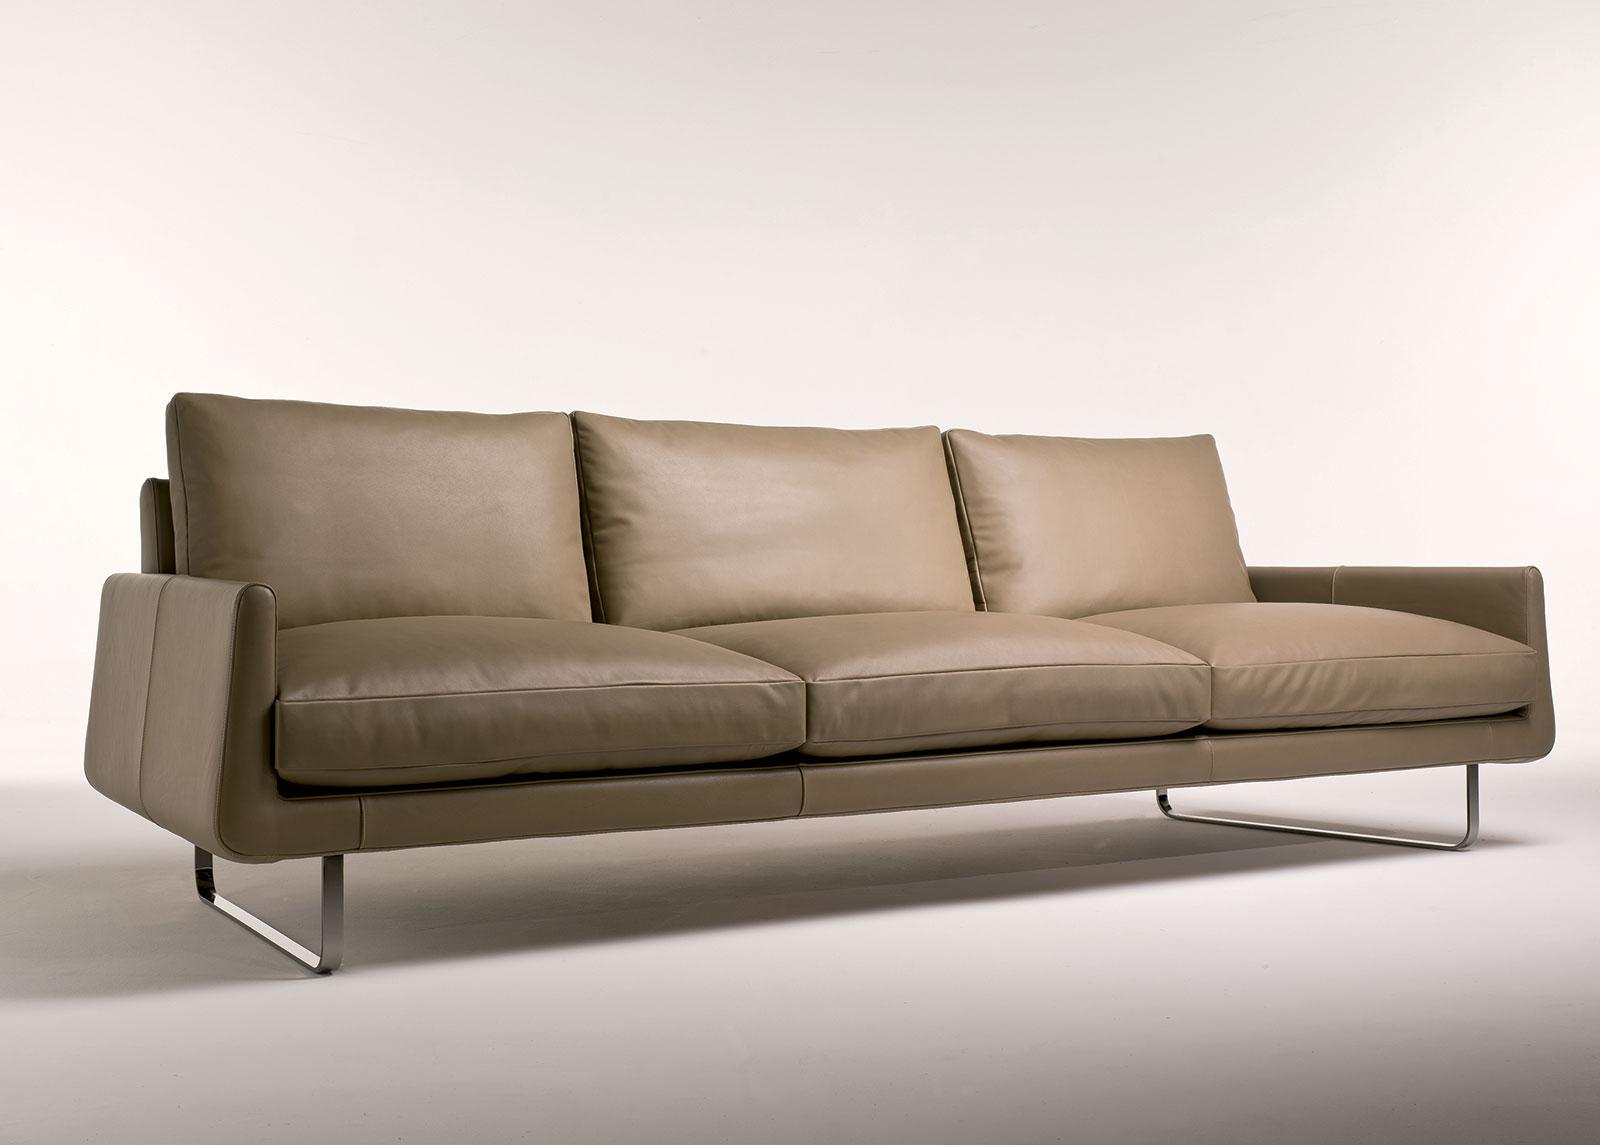 Joshua 4 Seater Leather Sofa Shop Online Italy Dream